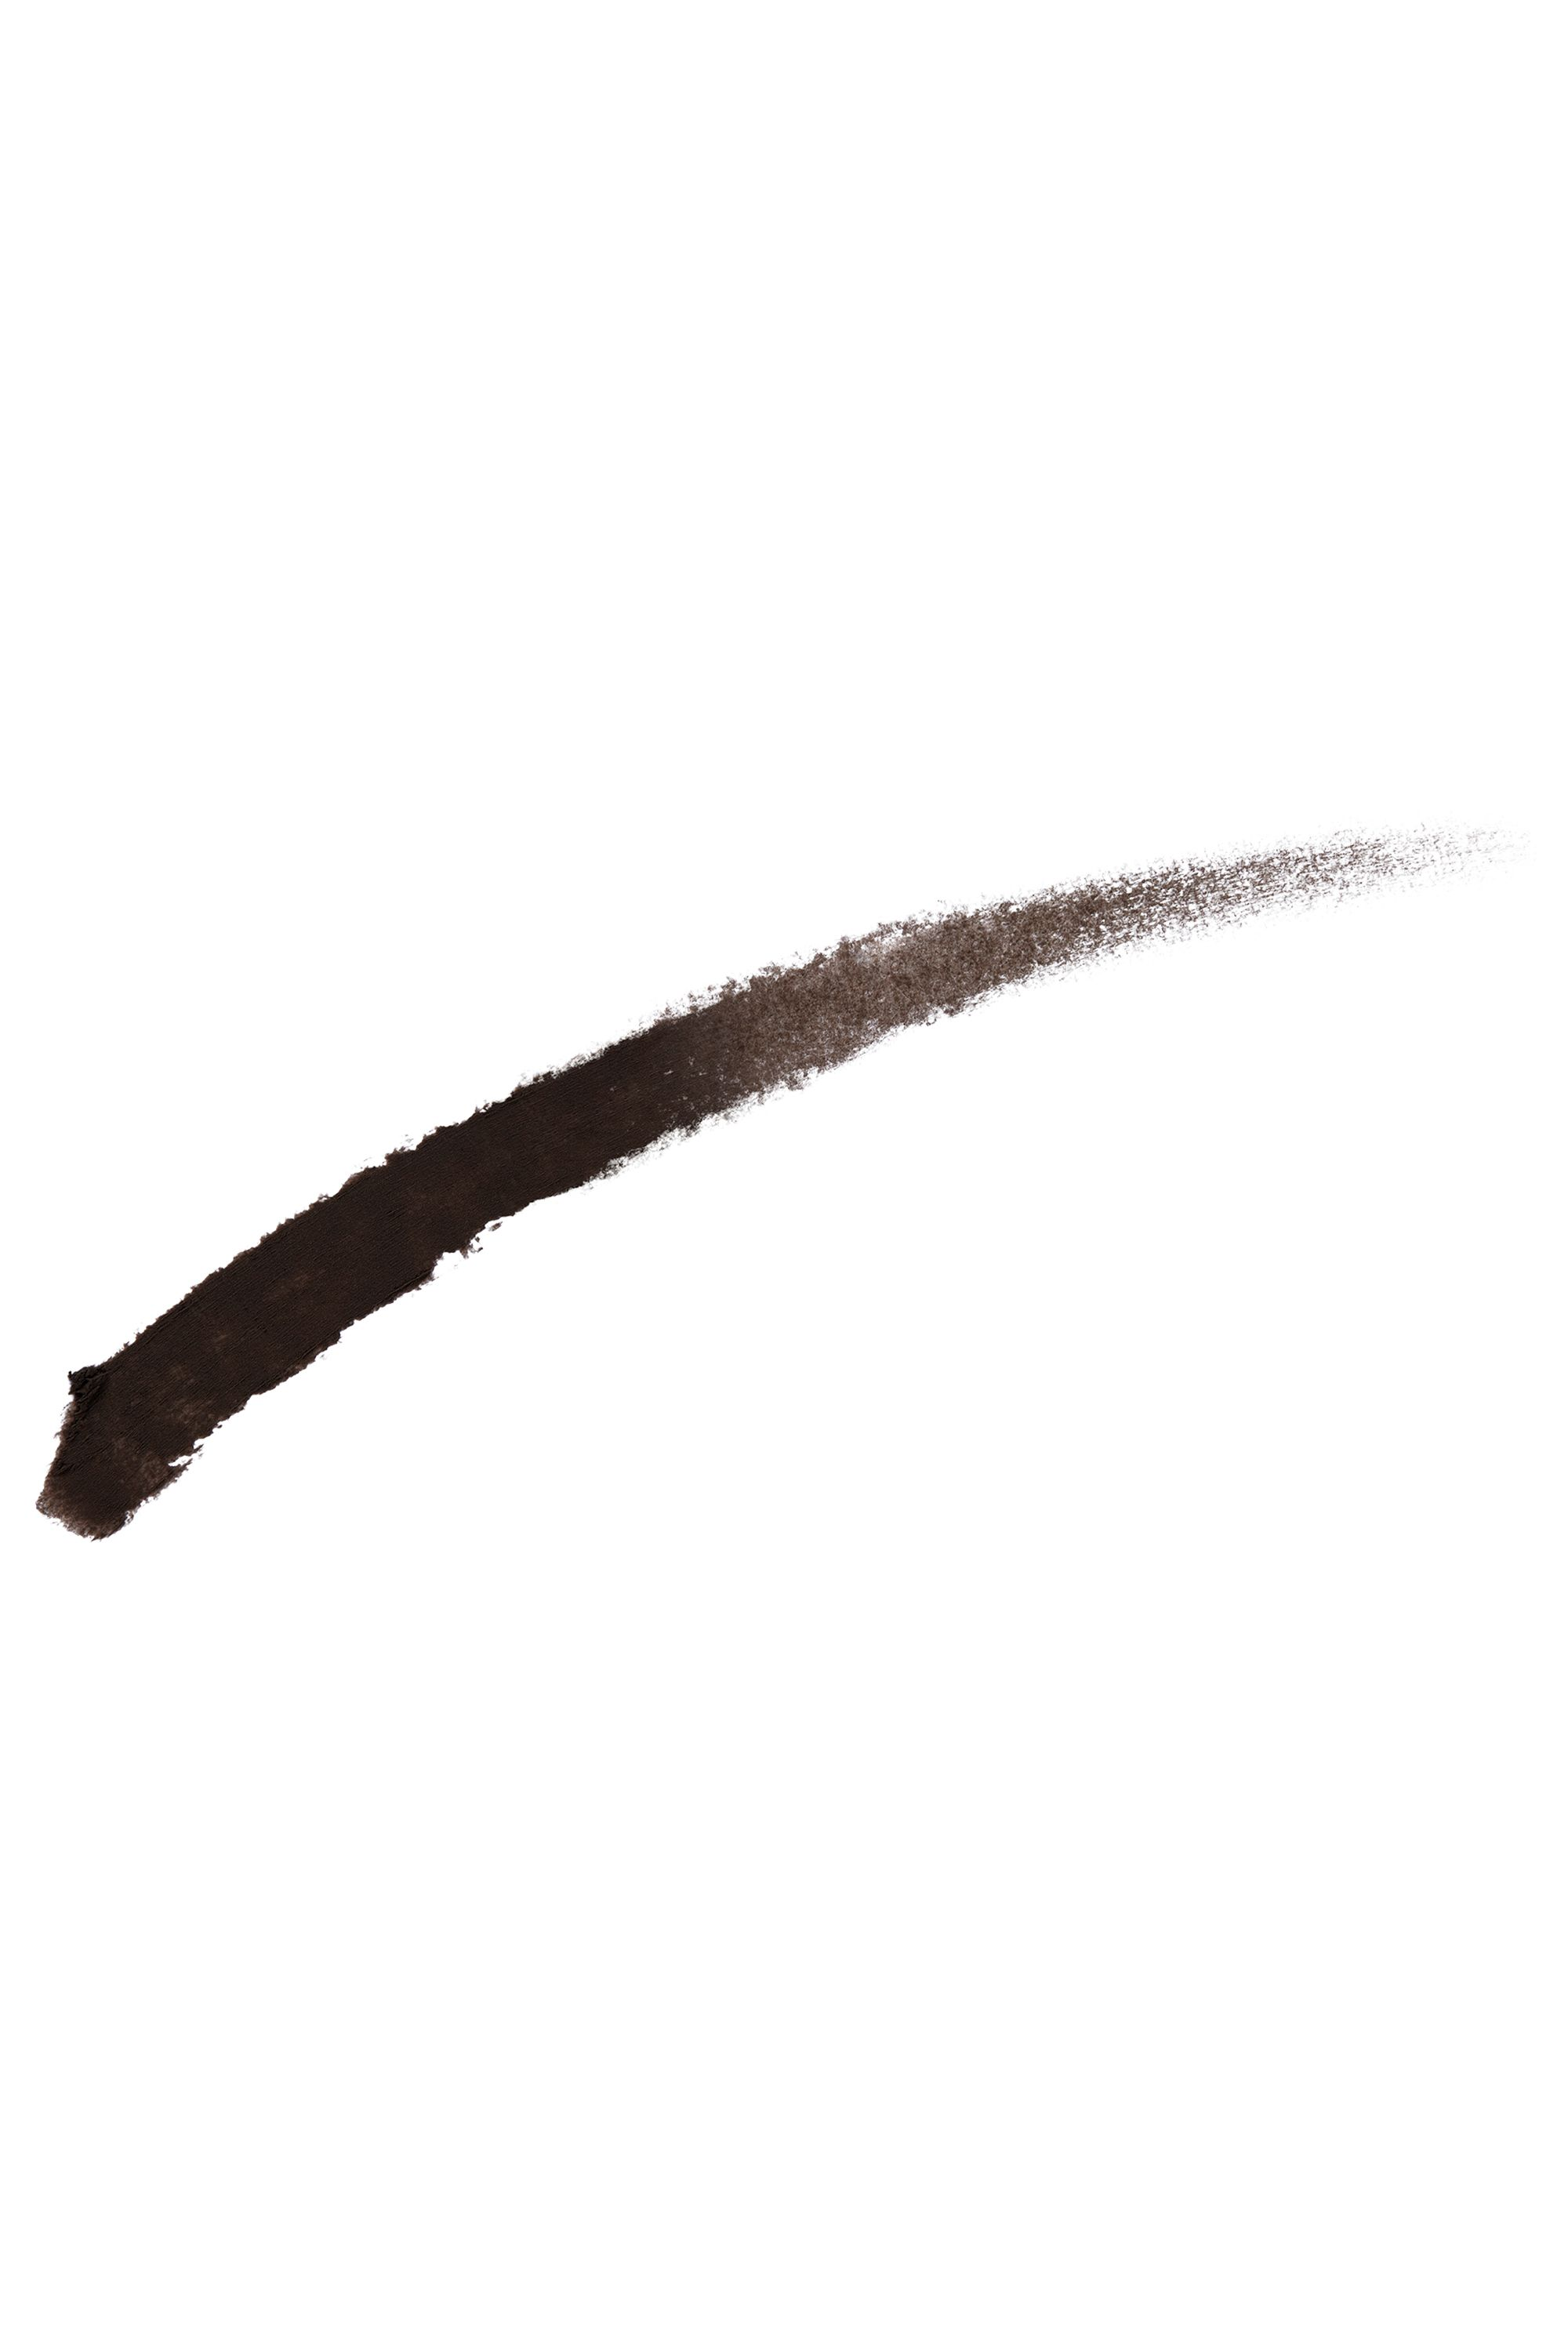 Blissim : Lancôme - Crayon sourcil double-embouts Monsieur Big Brow - 04 Ebony